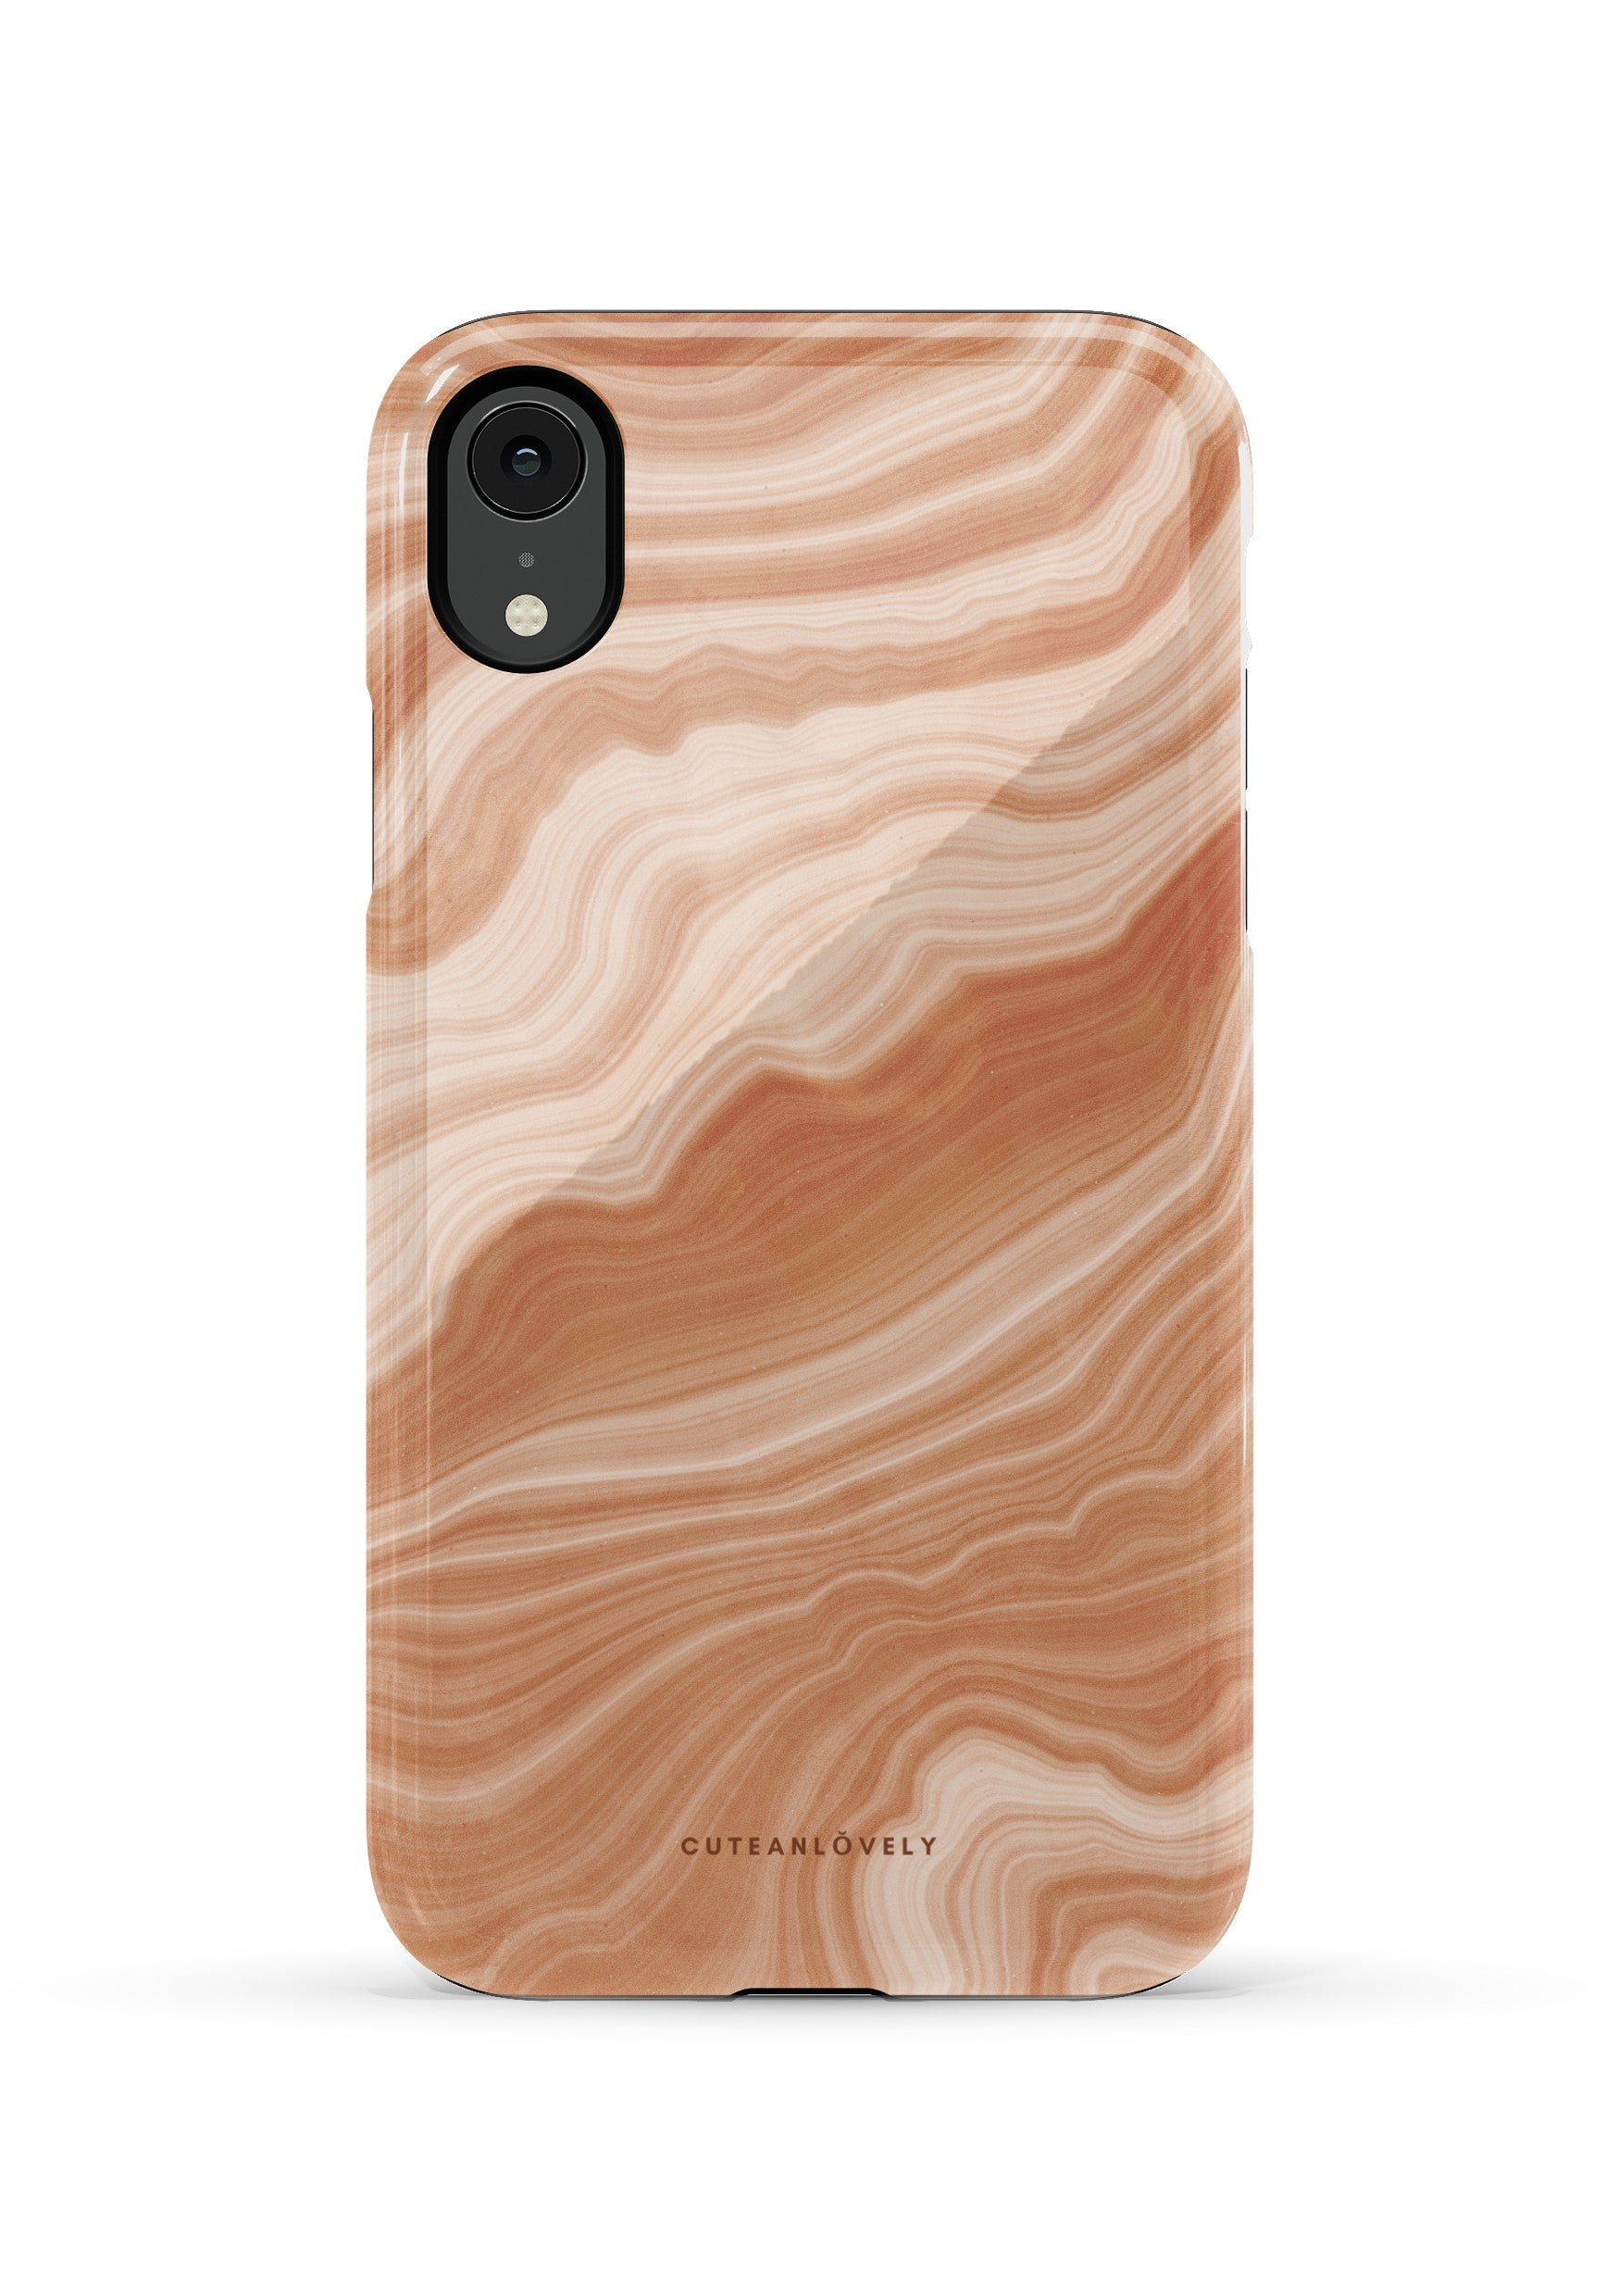 CUTEANLOVELY |Peach Sorbet Marble iPhone XR Case